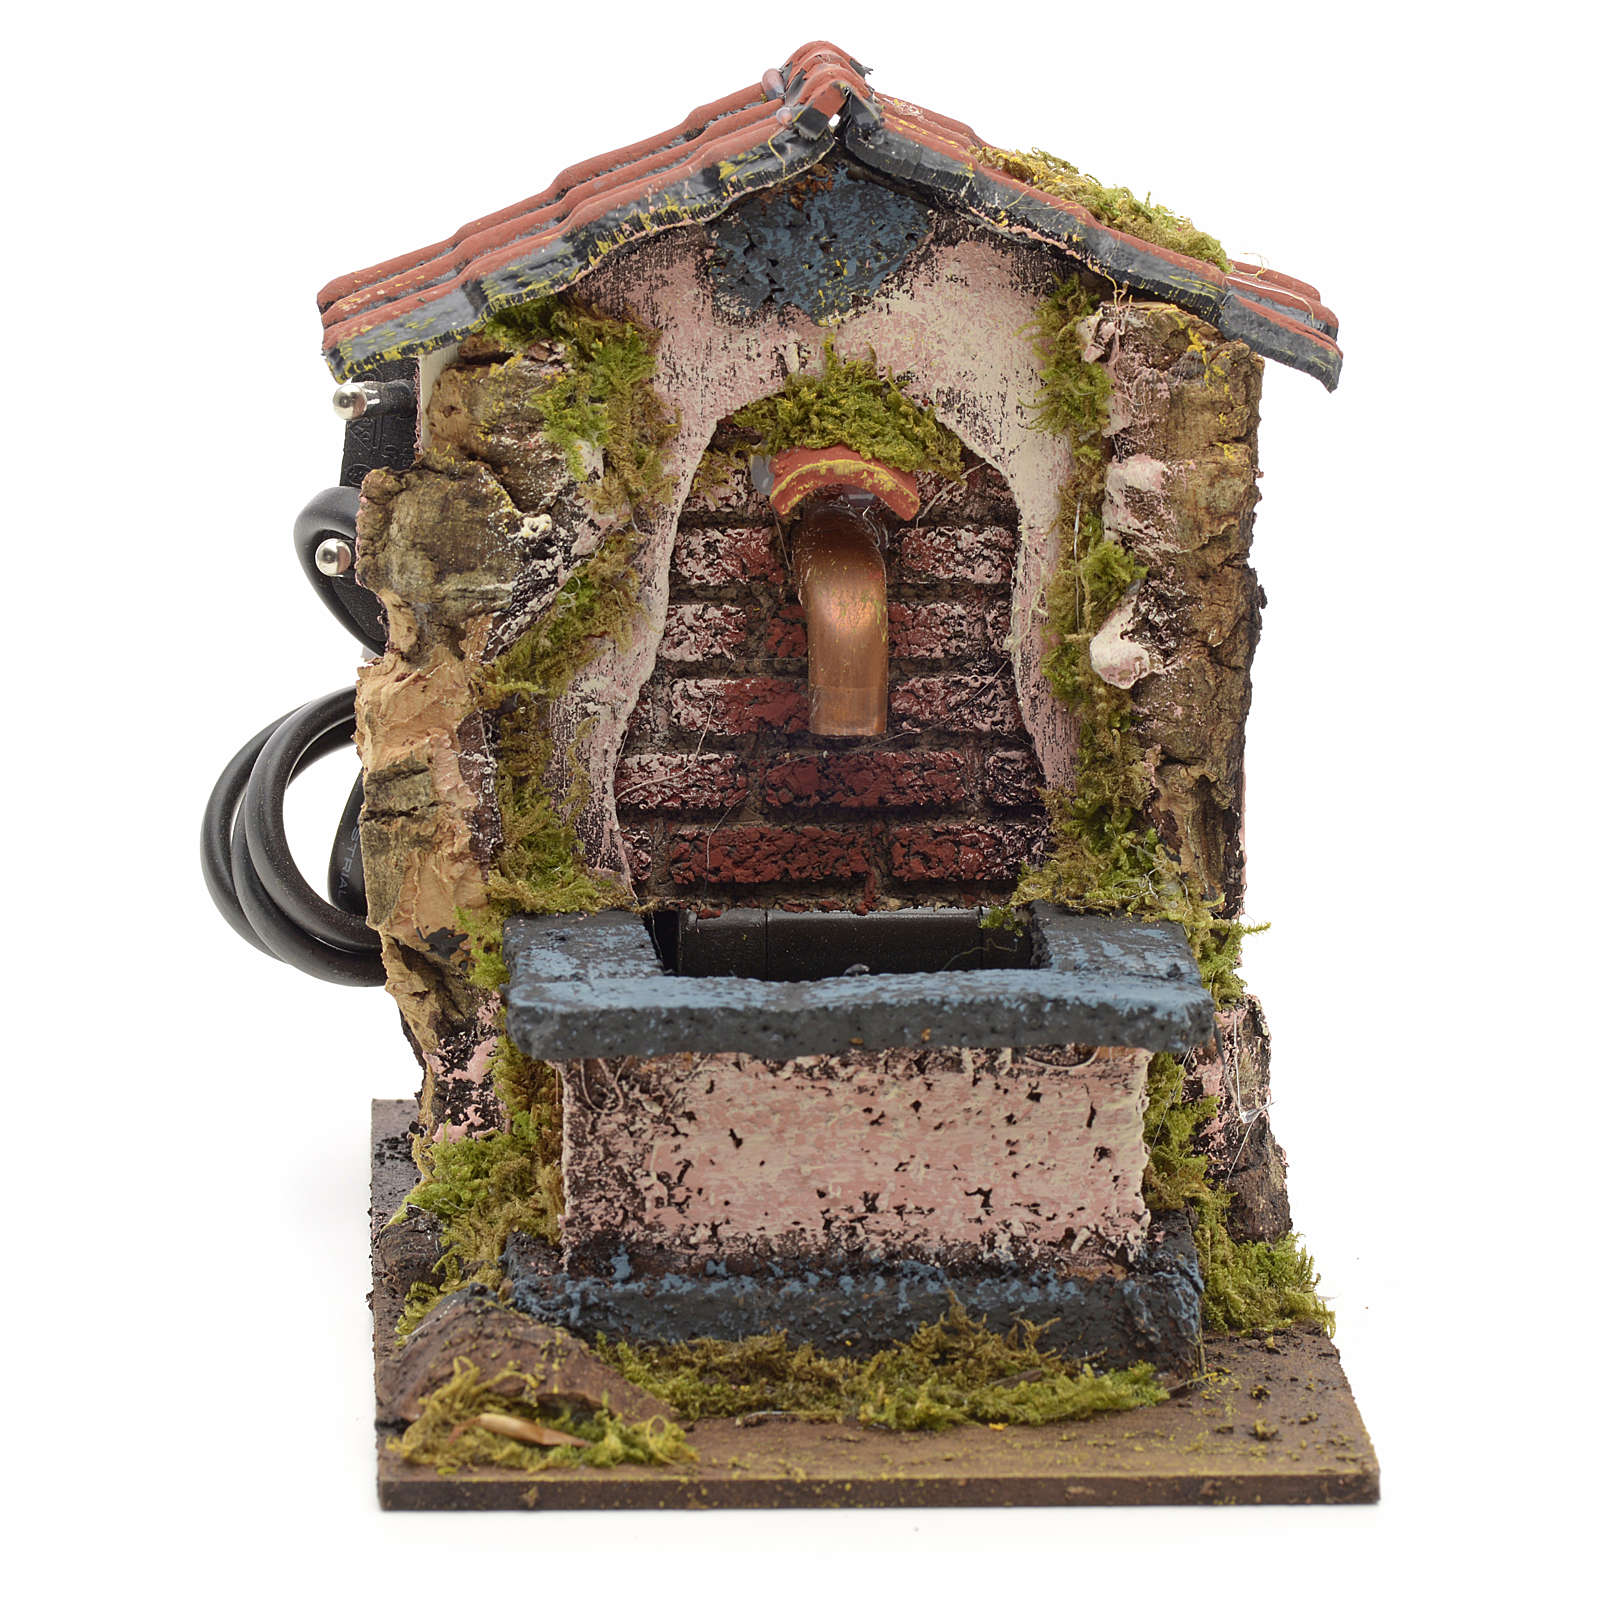 Electric fountain for nativities 14x10x14cm 4